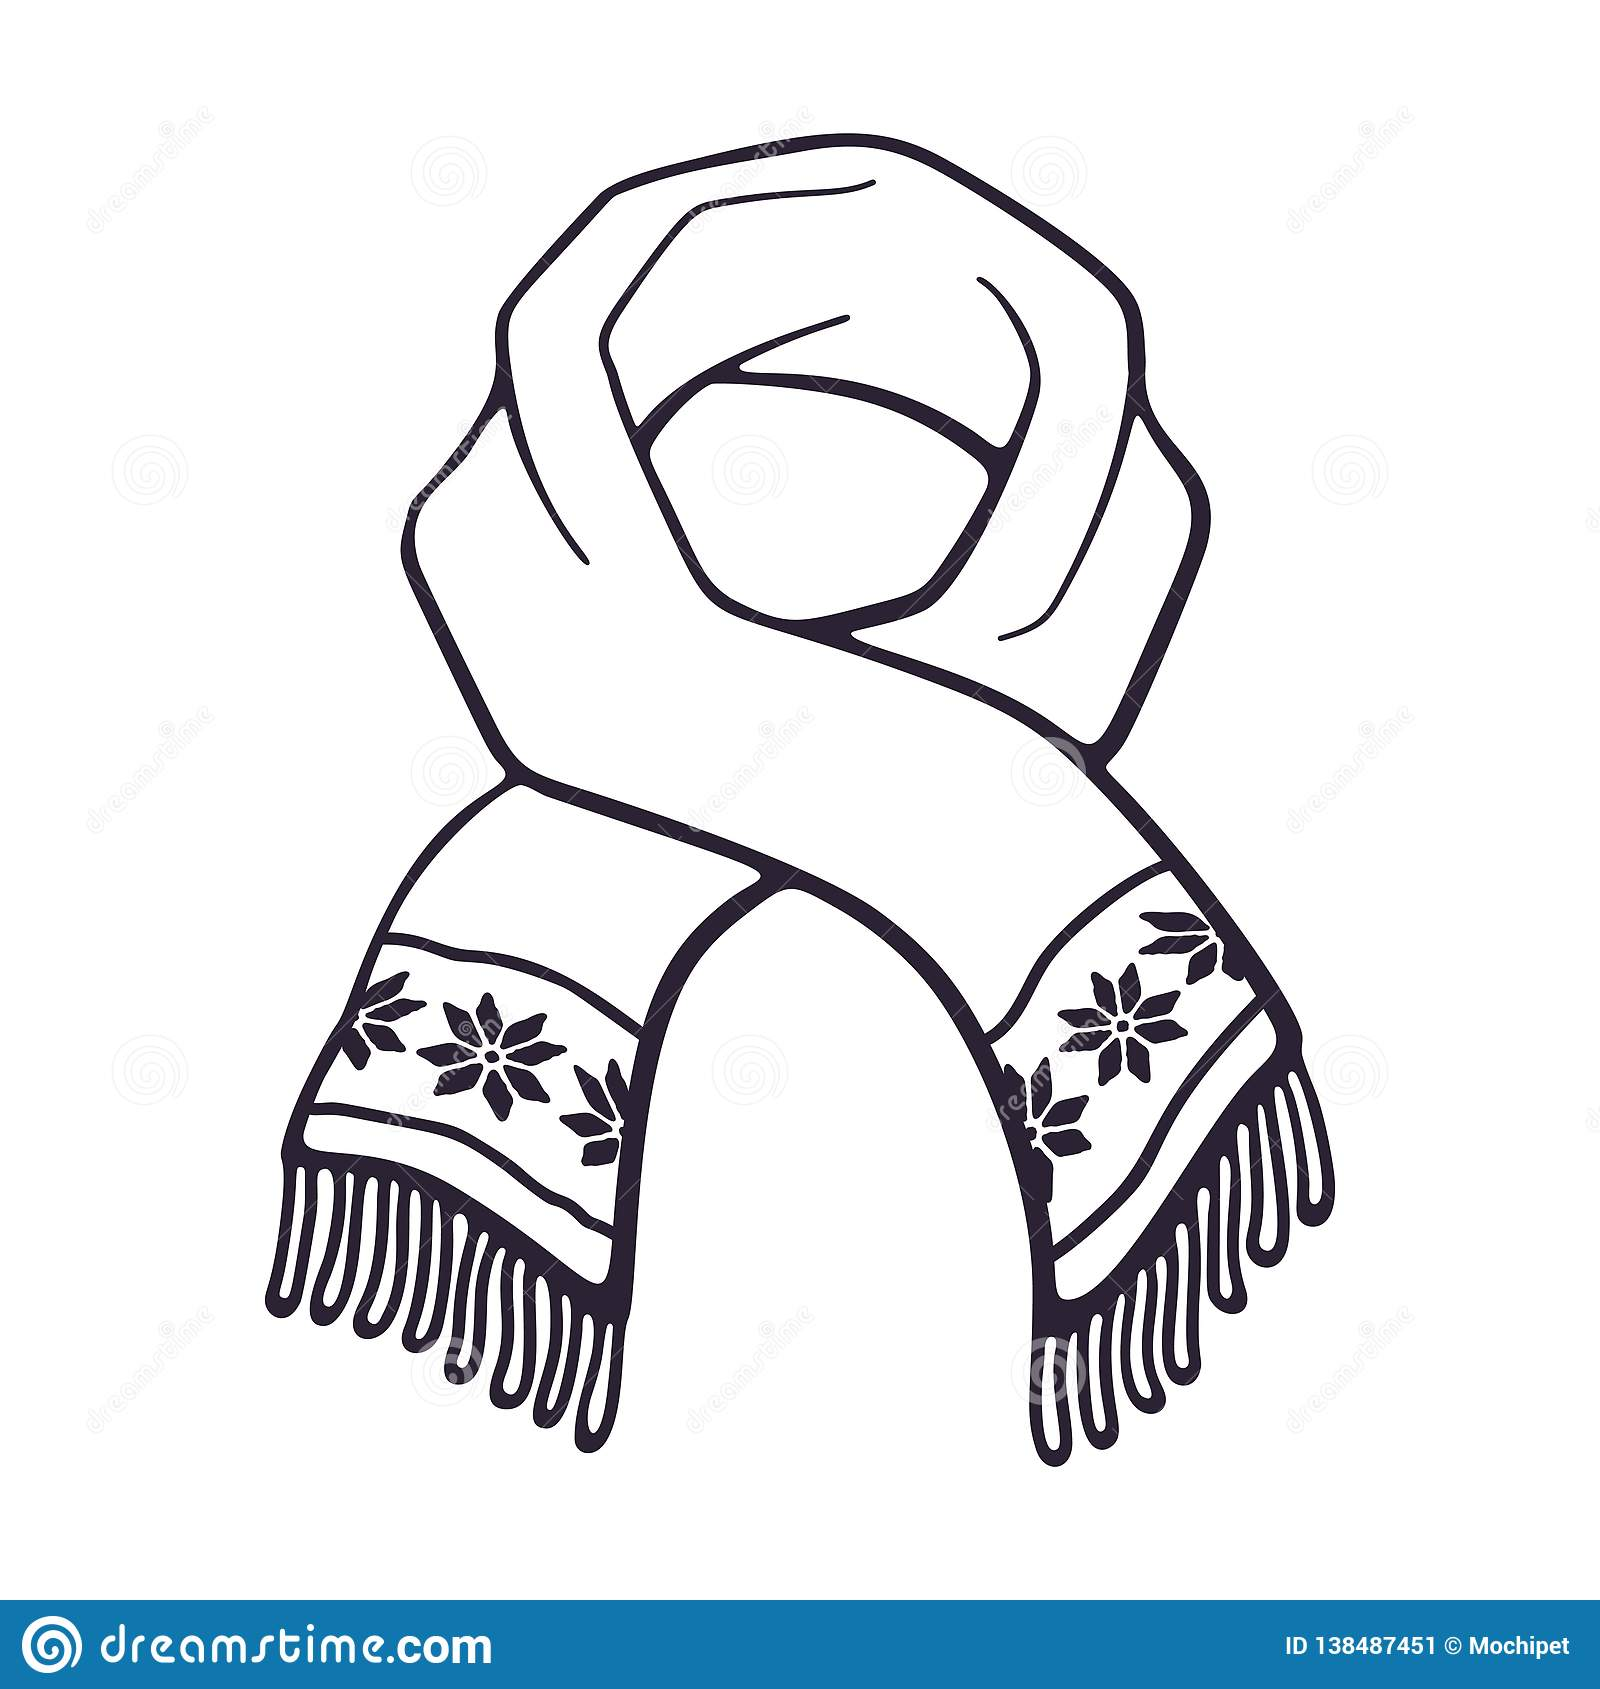 Vector Illustration Hand Drawn Doodle Of Winter Scarf With Snowflake Pattern Stock Vector Illustration Of Knitted Christmas 138487451